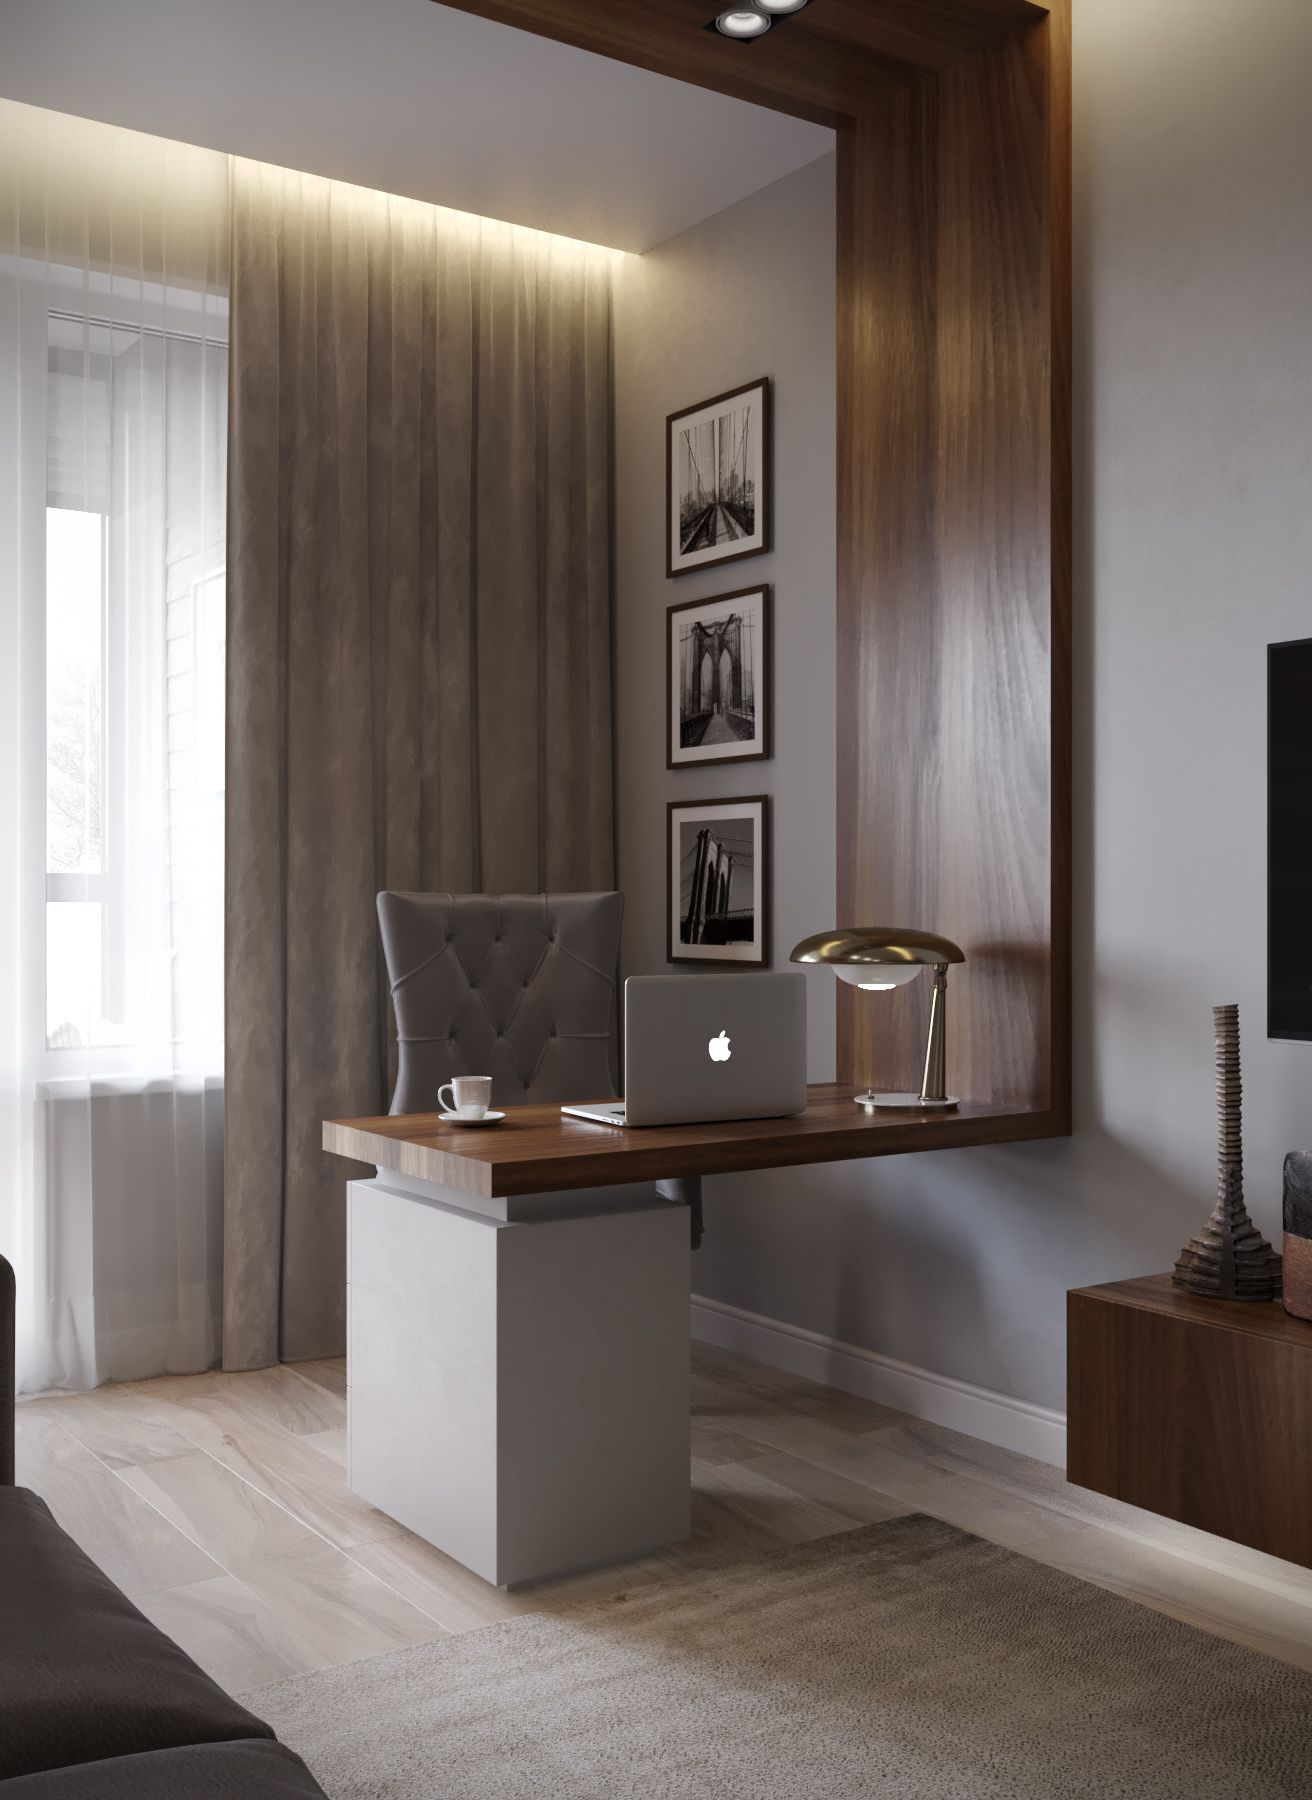 Home zimmer design-ideen home office interior design in calm colors using wooden panels